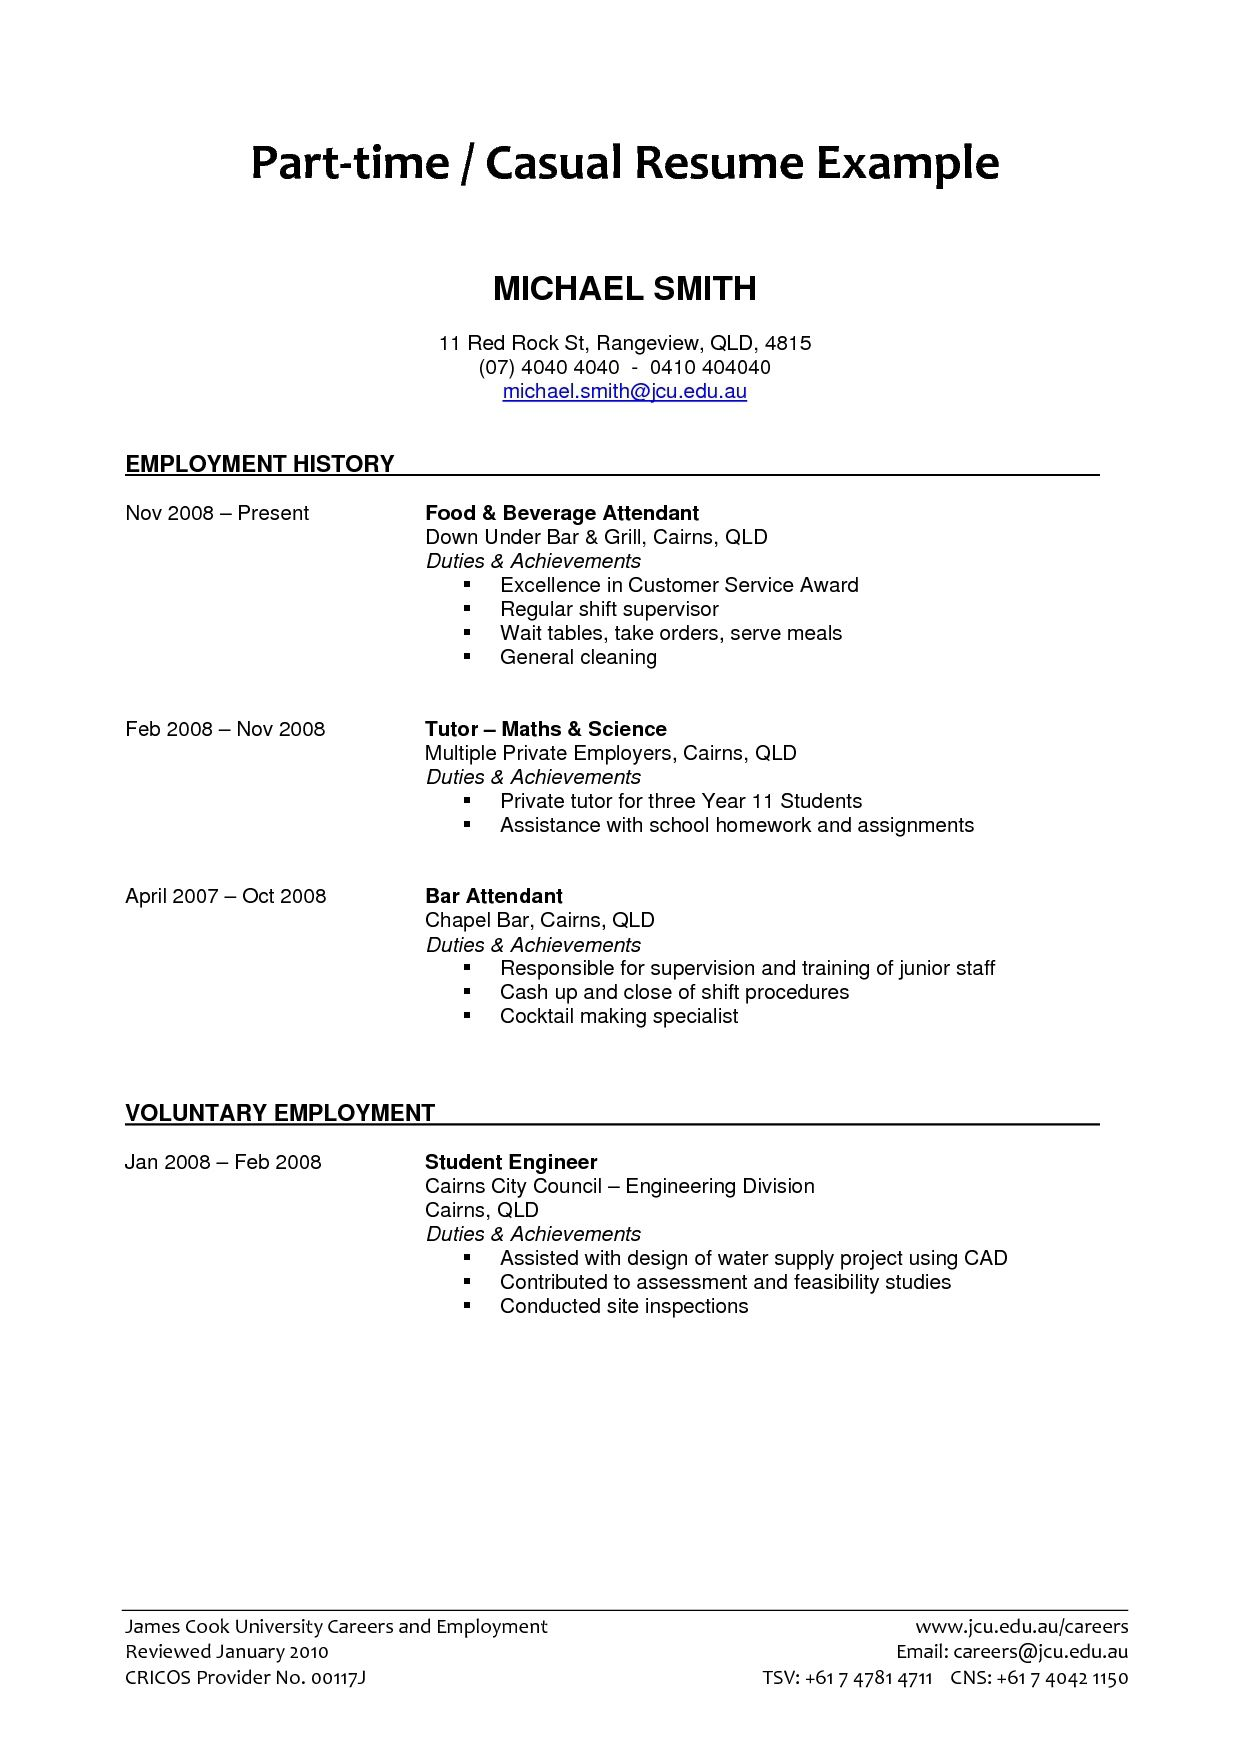 004 Unbelievable Part Time Job Resume Template Example  Student SummaryFull